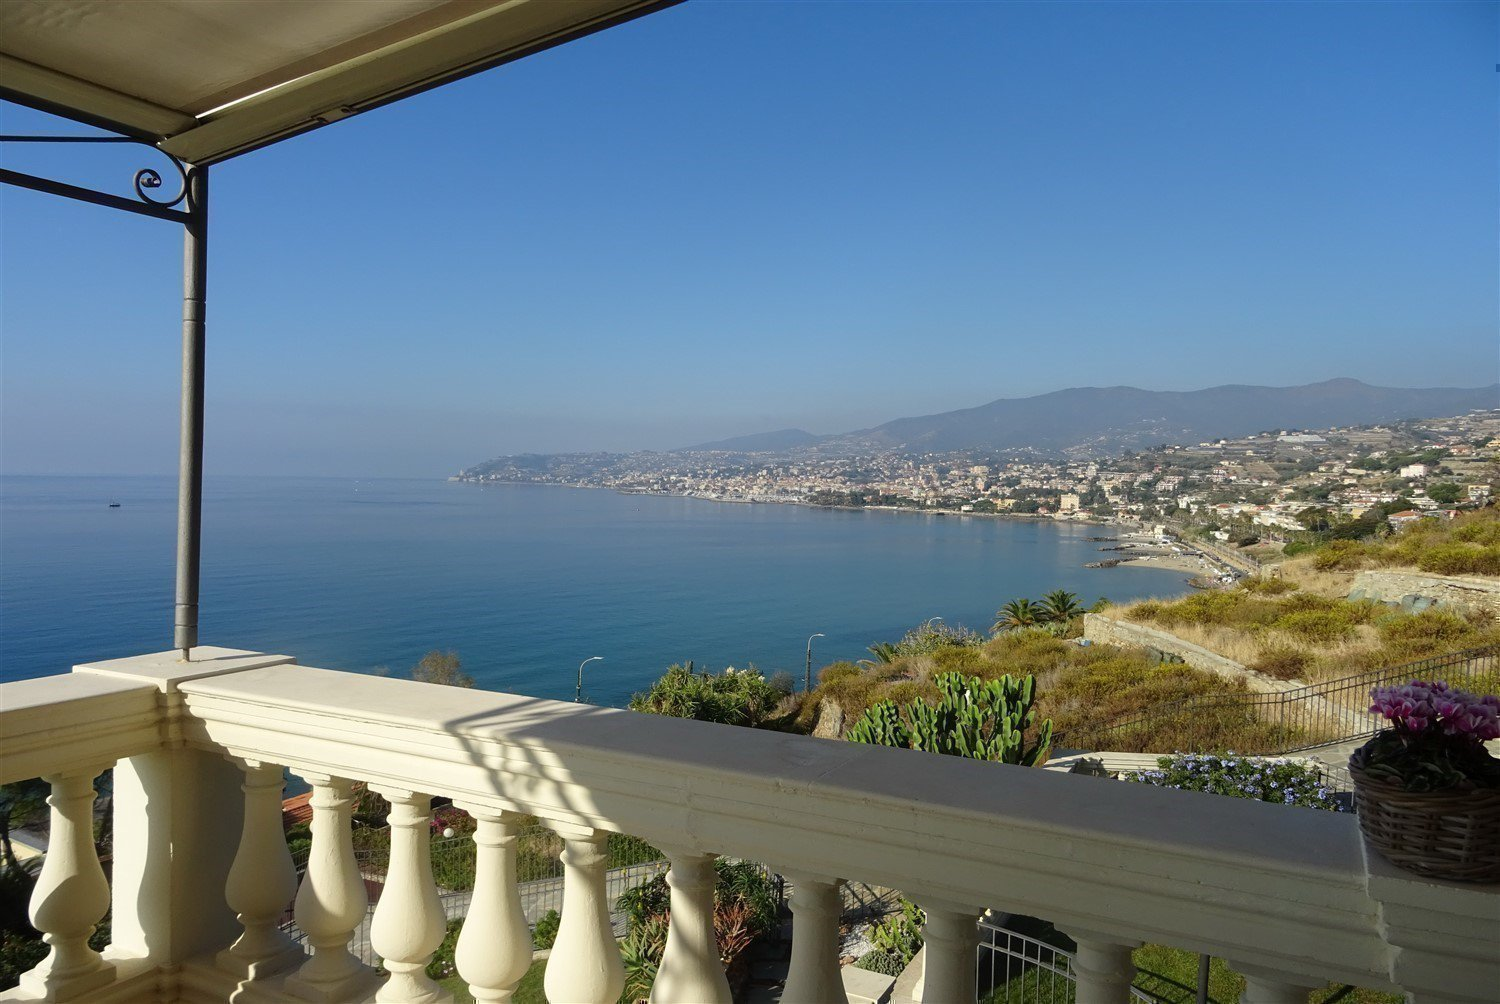 Dream apartment for sale in Sanremo sea- terrace with a sea view